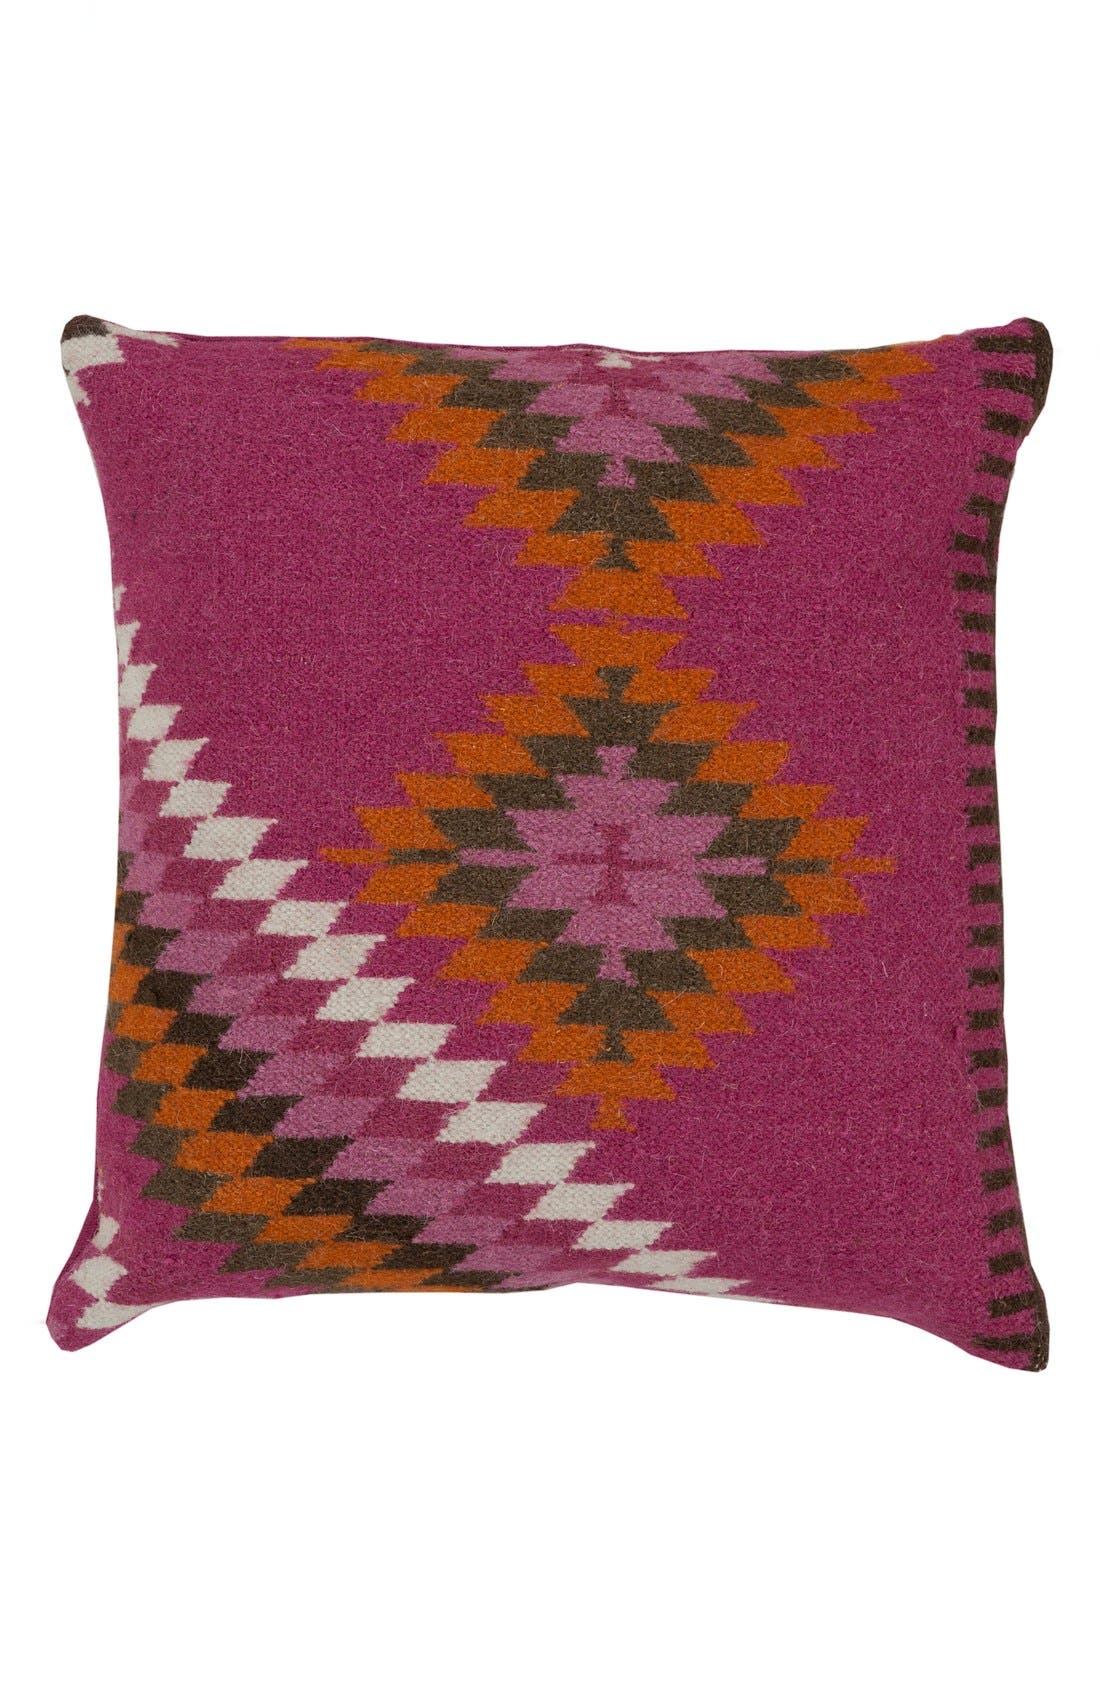 Kilim Wool Accent Pillow Cover,                         Main,                         color, Magenta/ Beige/ Burnt Orange